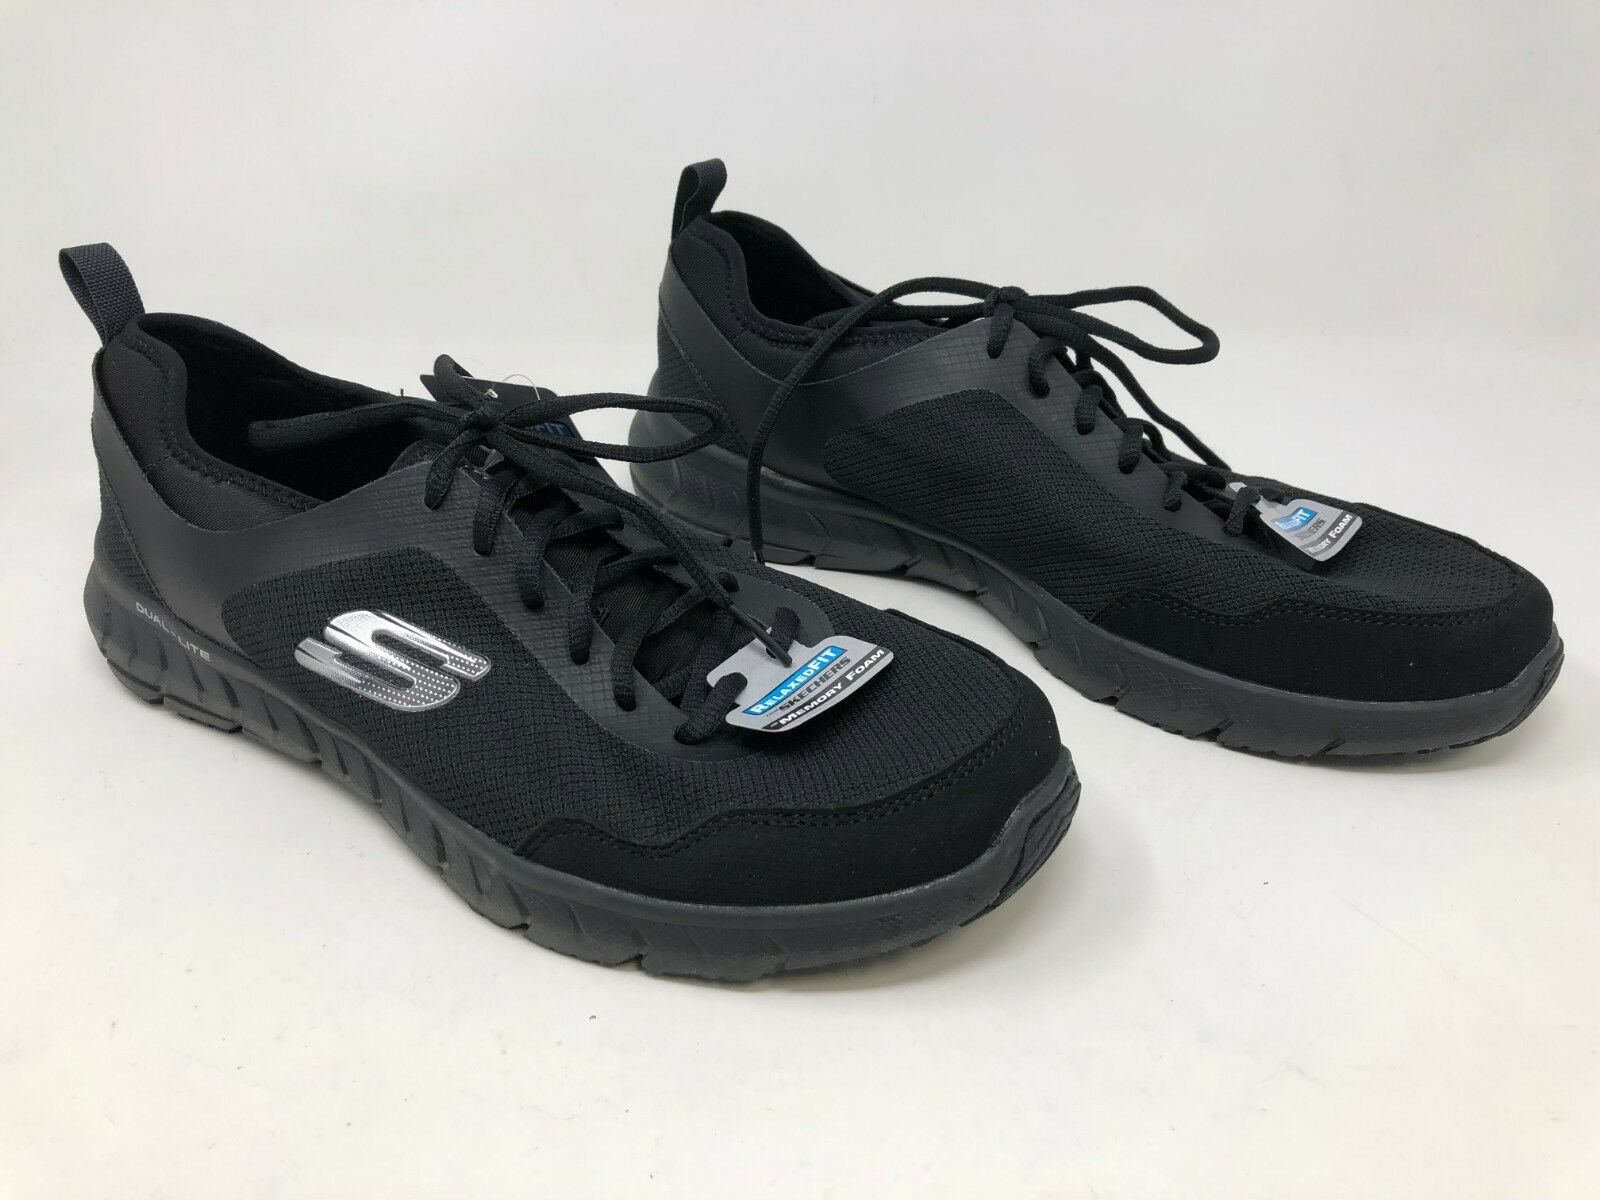 New  Men's Skechers Lite-Weight Relaxed Fit Memory Foam 59915H Black Silver 41S